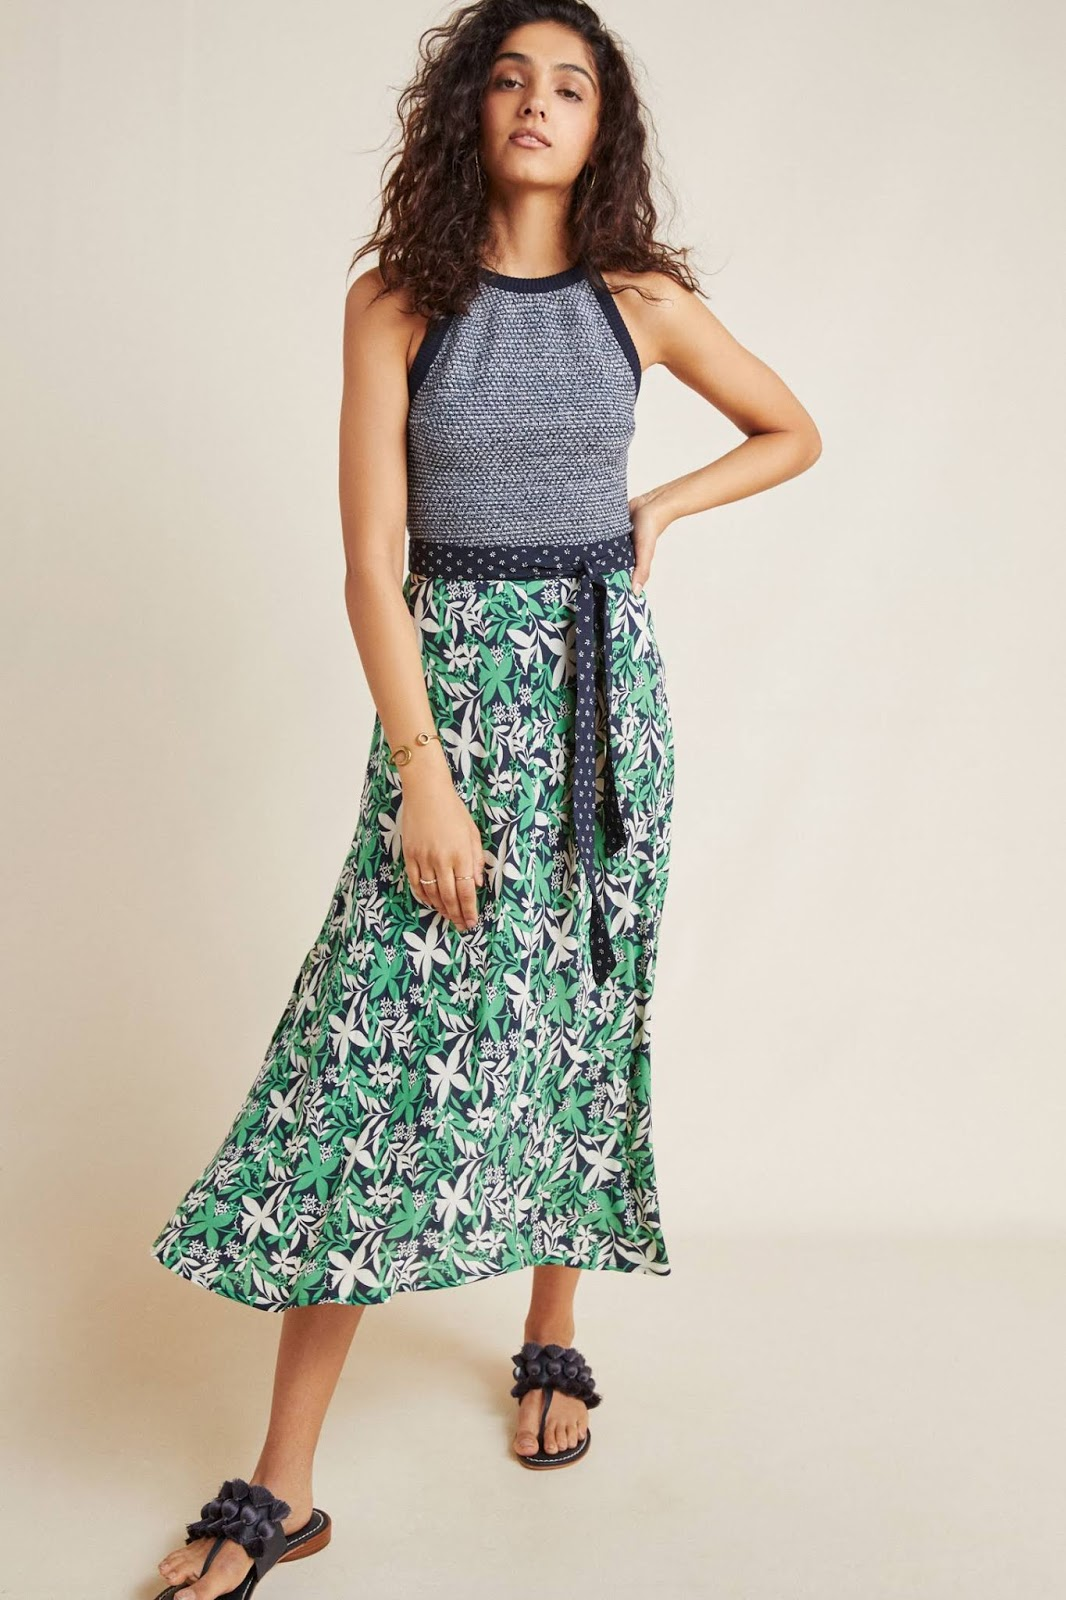 Anthropologie May 2019 Promo Weekend picks :: Effortlessly with Roxy